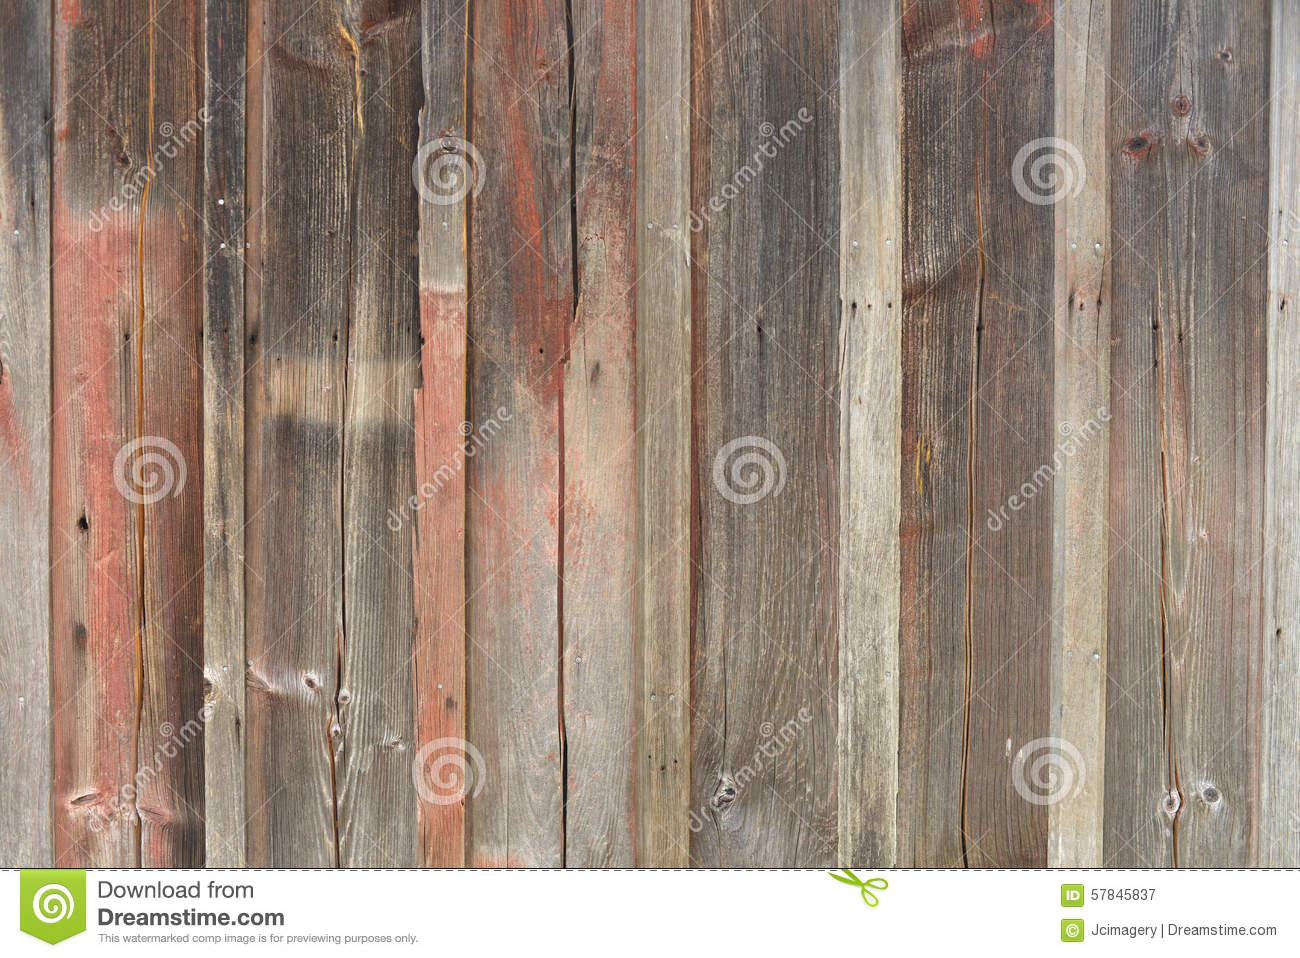 Old Barn Wood Background Stock Photo - Image: 57845837